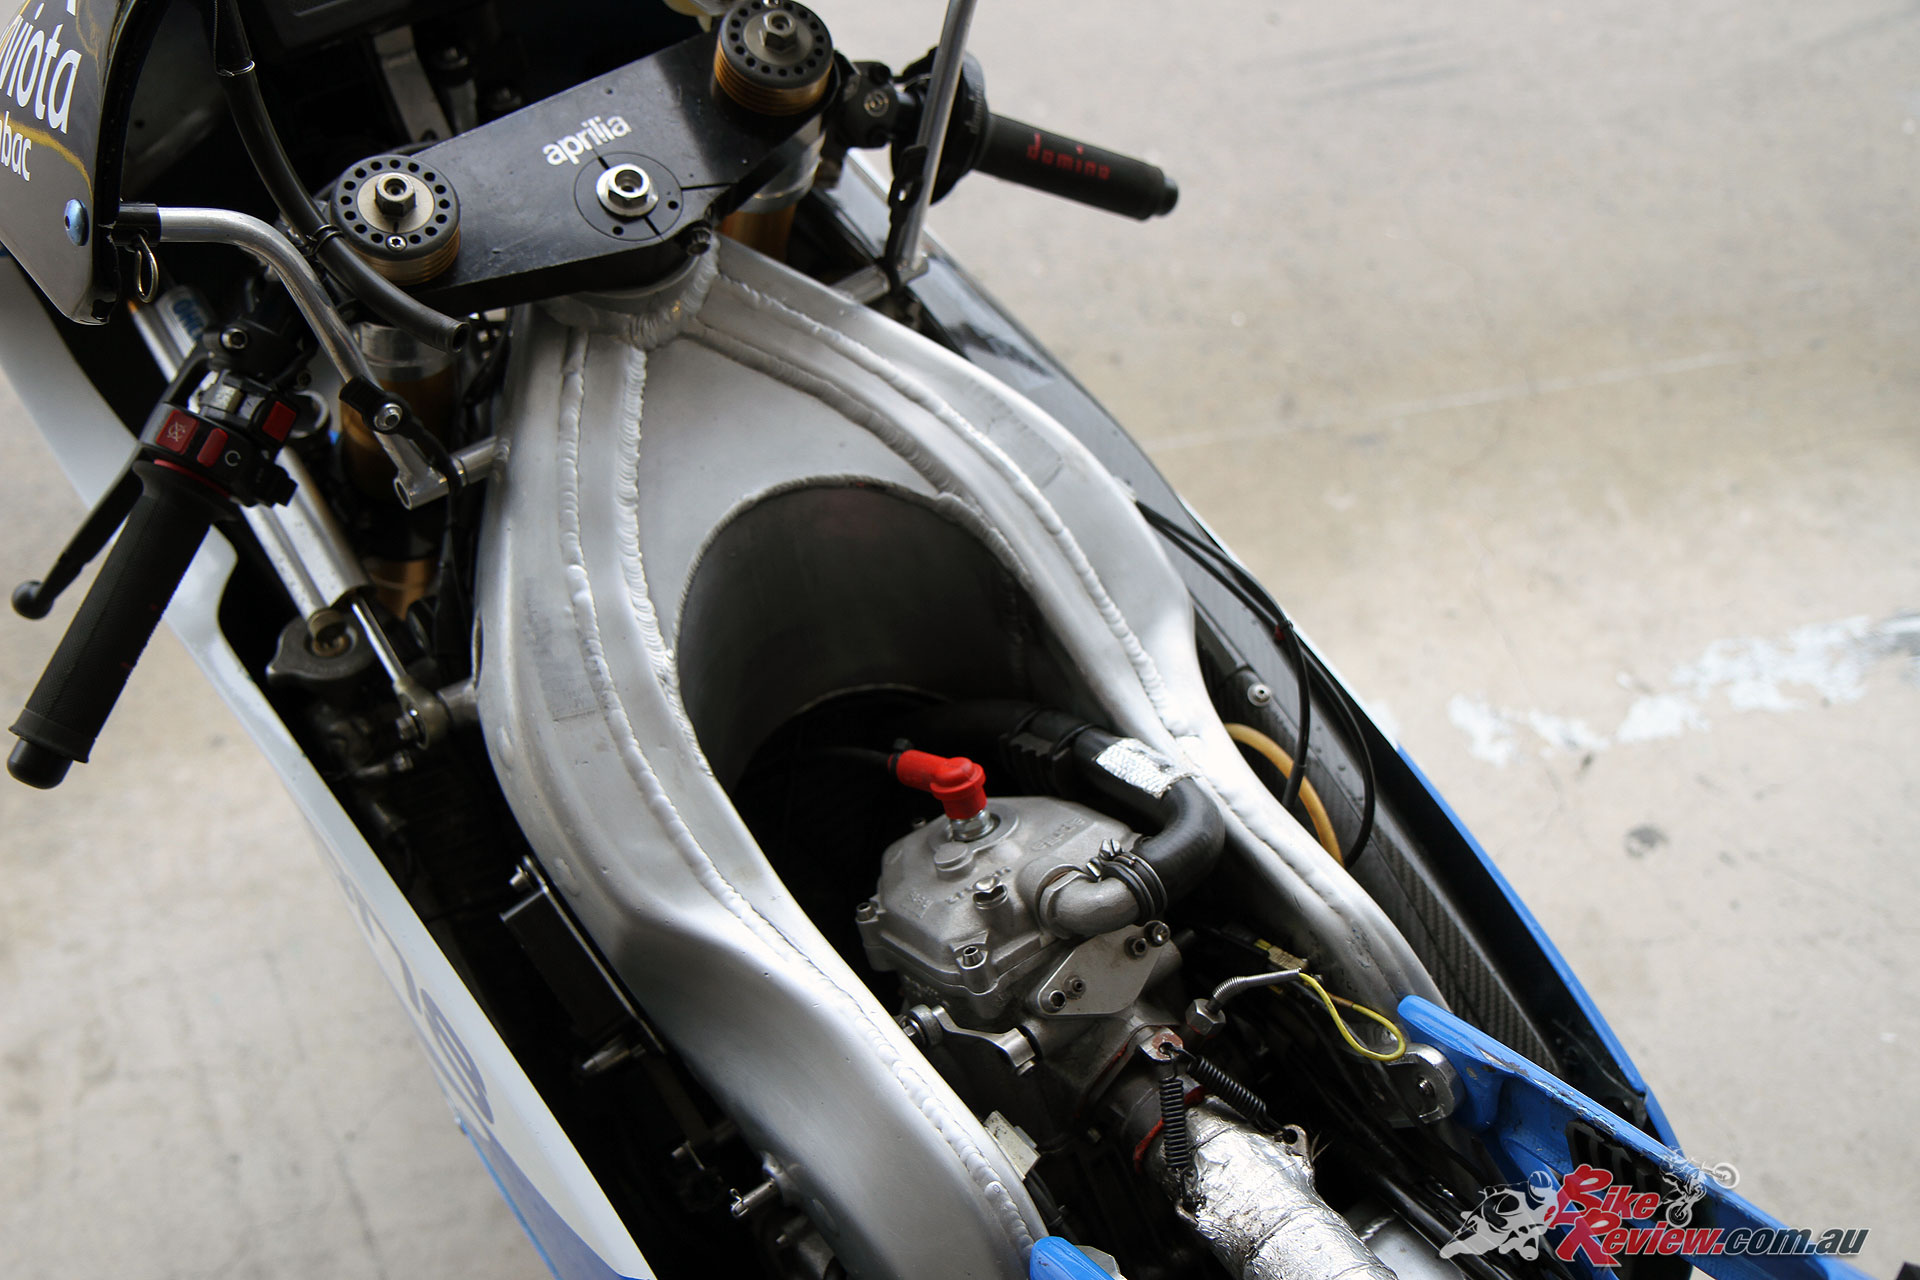 The firm but flexible chassis reminded Peter Galvin of the Honda 250 GP bike